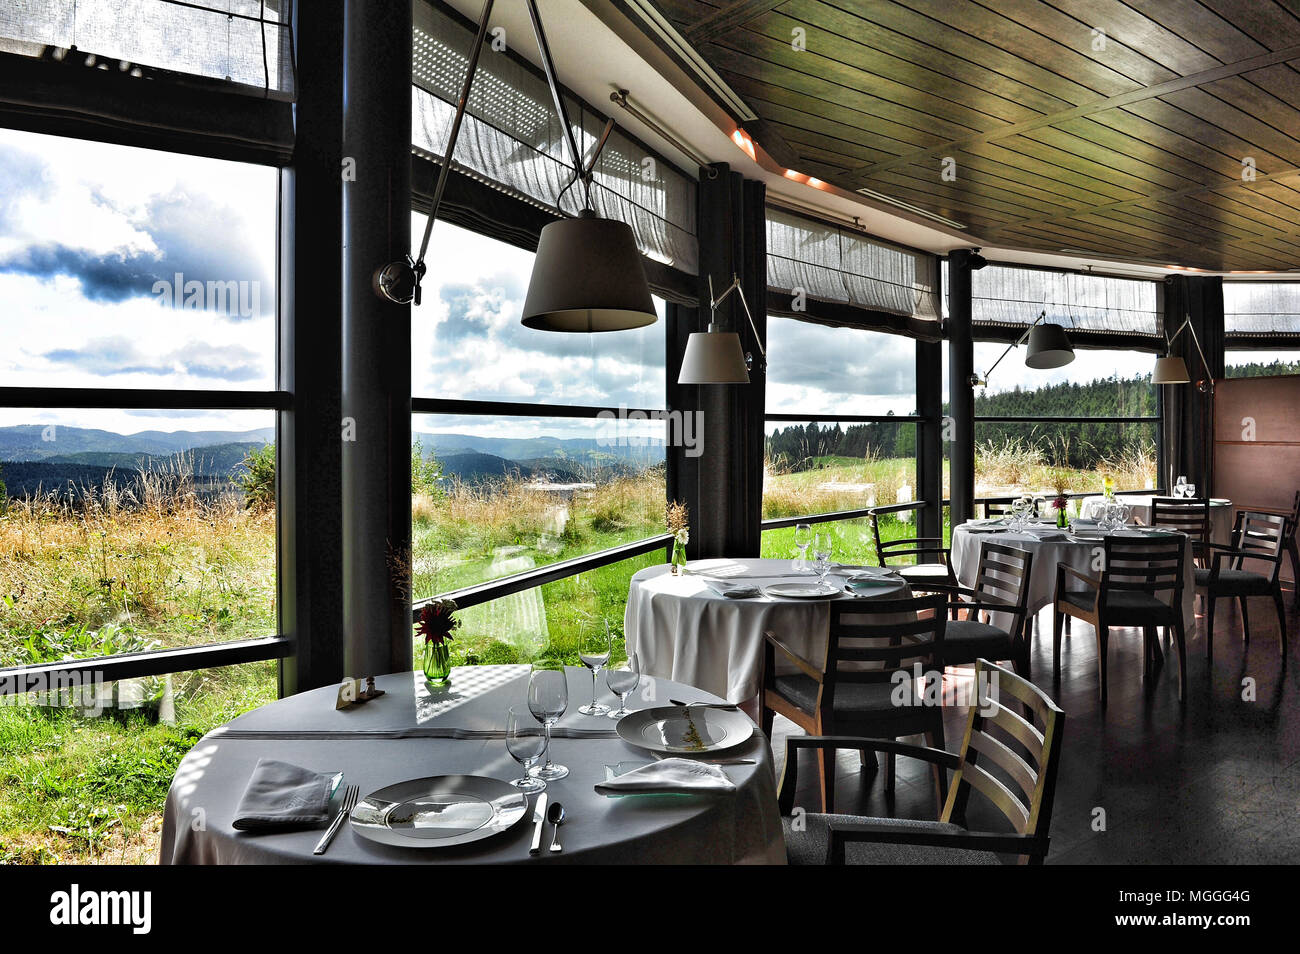 Fine dining with a view over the Auvergne countryside at Michelin three-starred Régis et Jacques Marcon restaurant in Saint-Bonnet-le-Froid, France - Stock Image